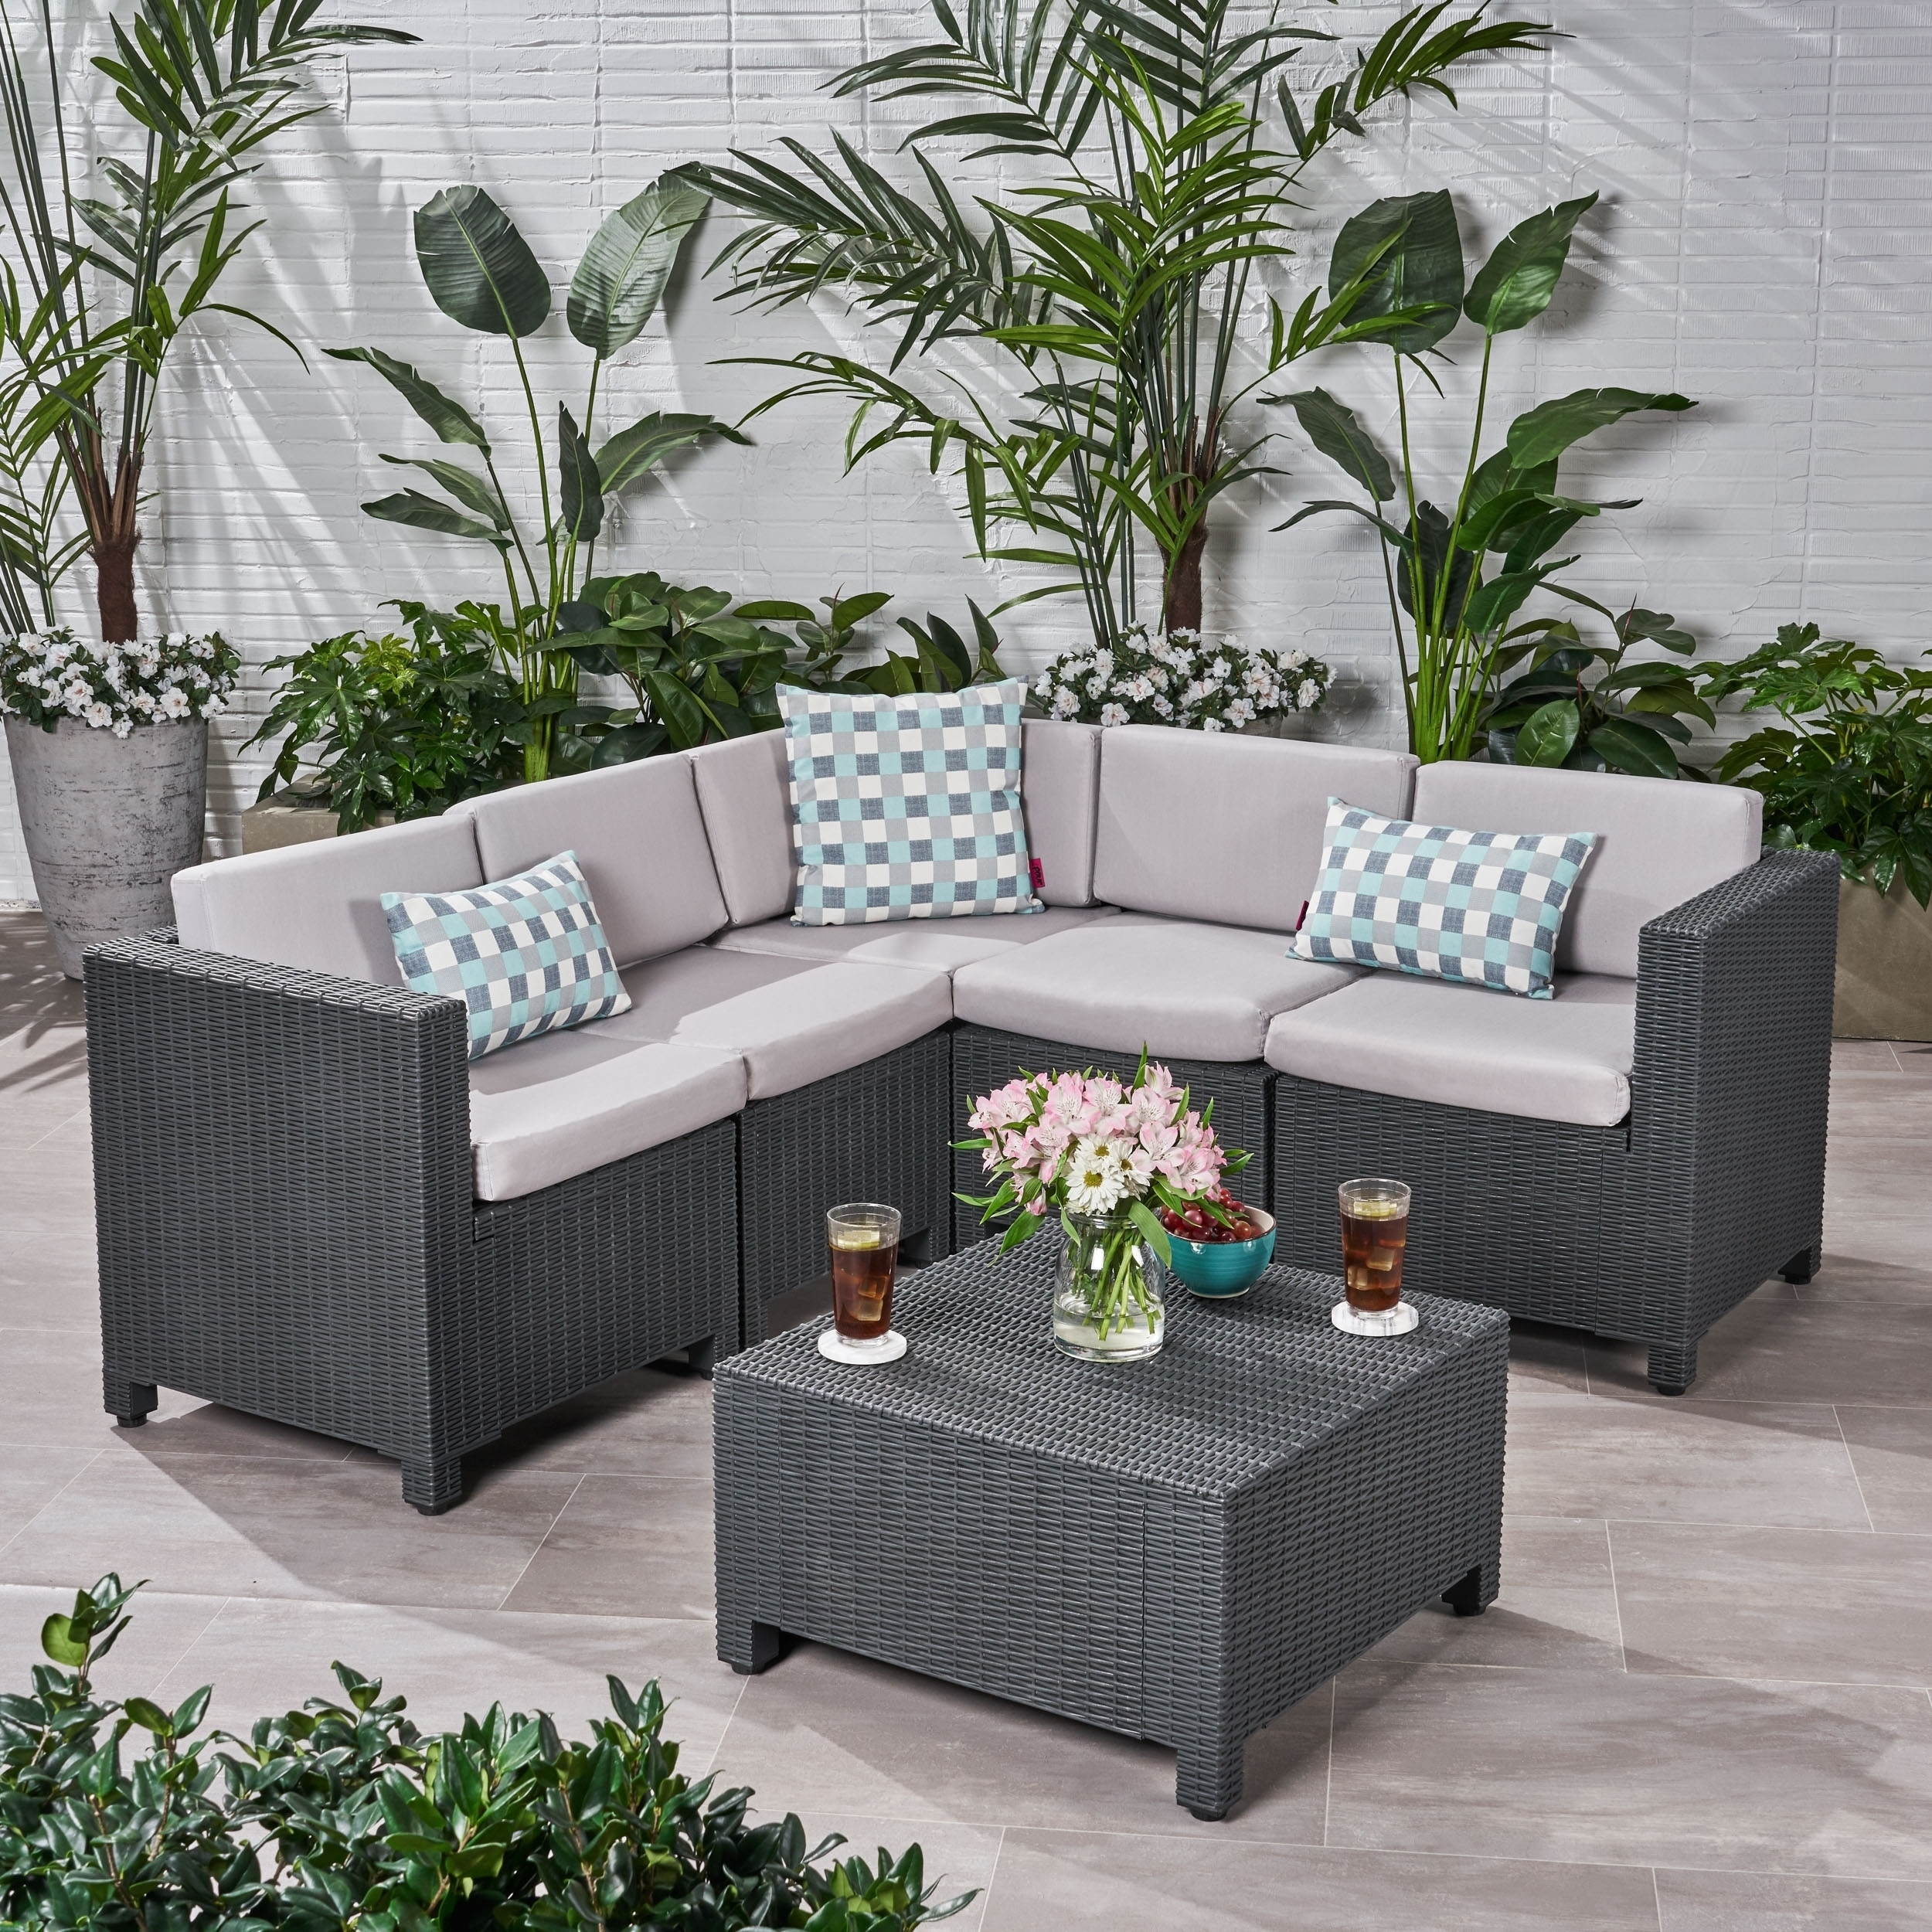 Rattan Twin Sofa Waverly Outdoor 5 Seater Faux Wicker Sectional Sofa Set With Cushions By Christopher Knight Home